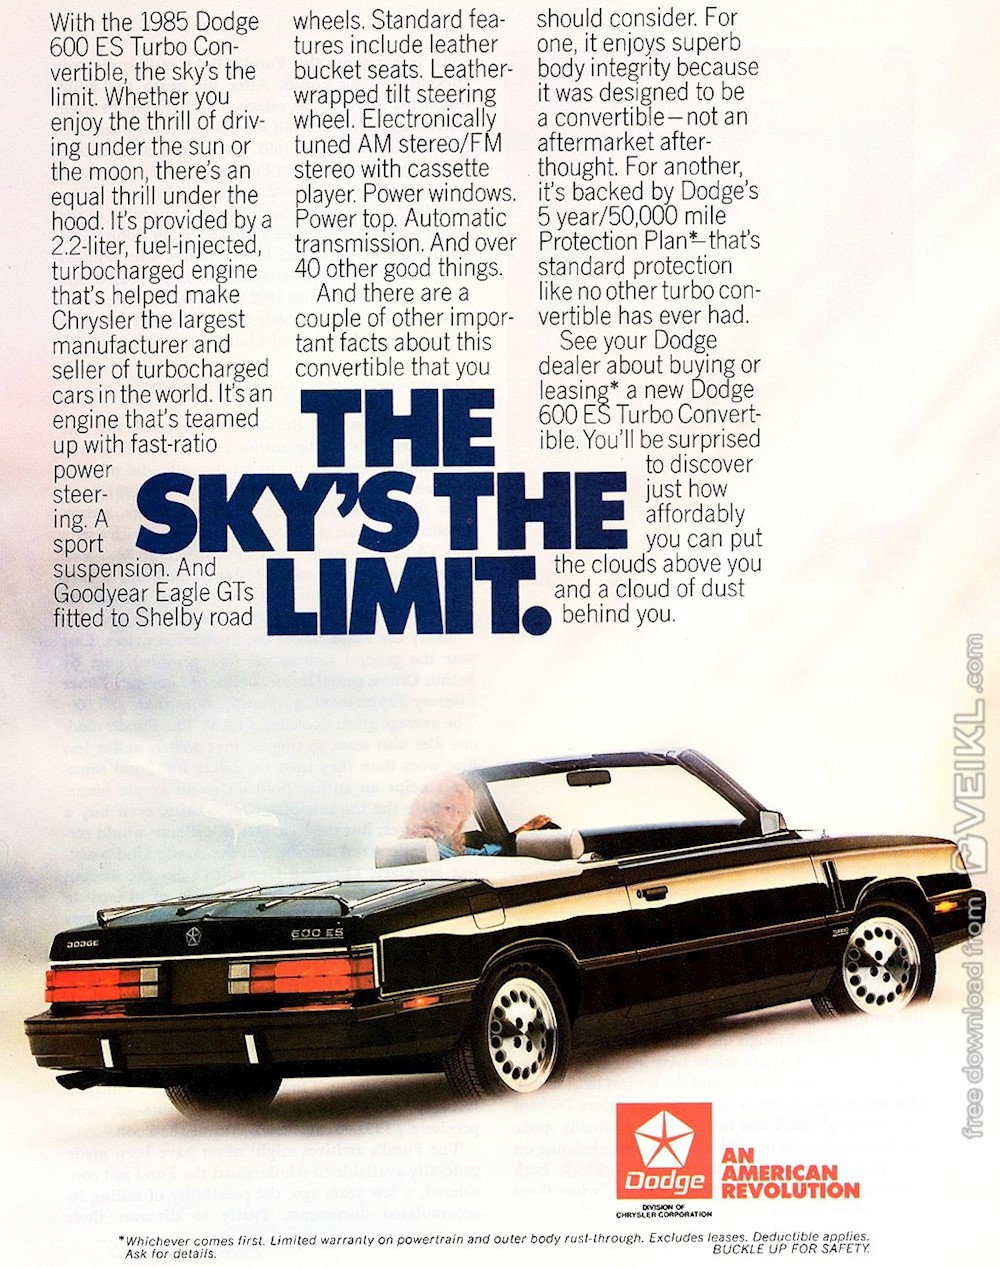 Dodge 600 Convertible Advertisement 1985 EN